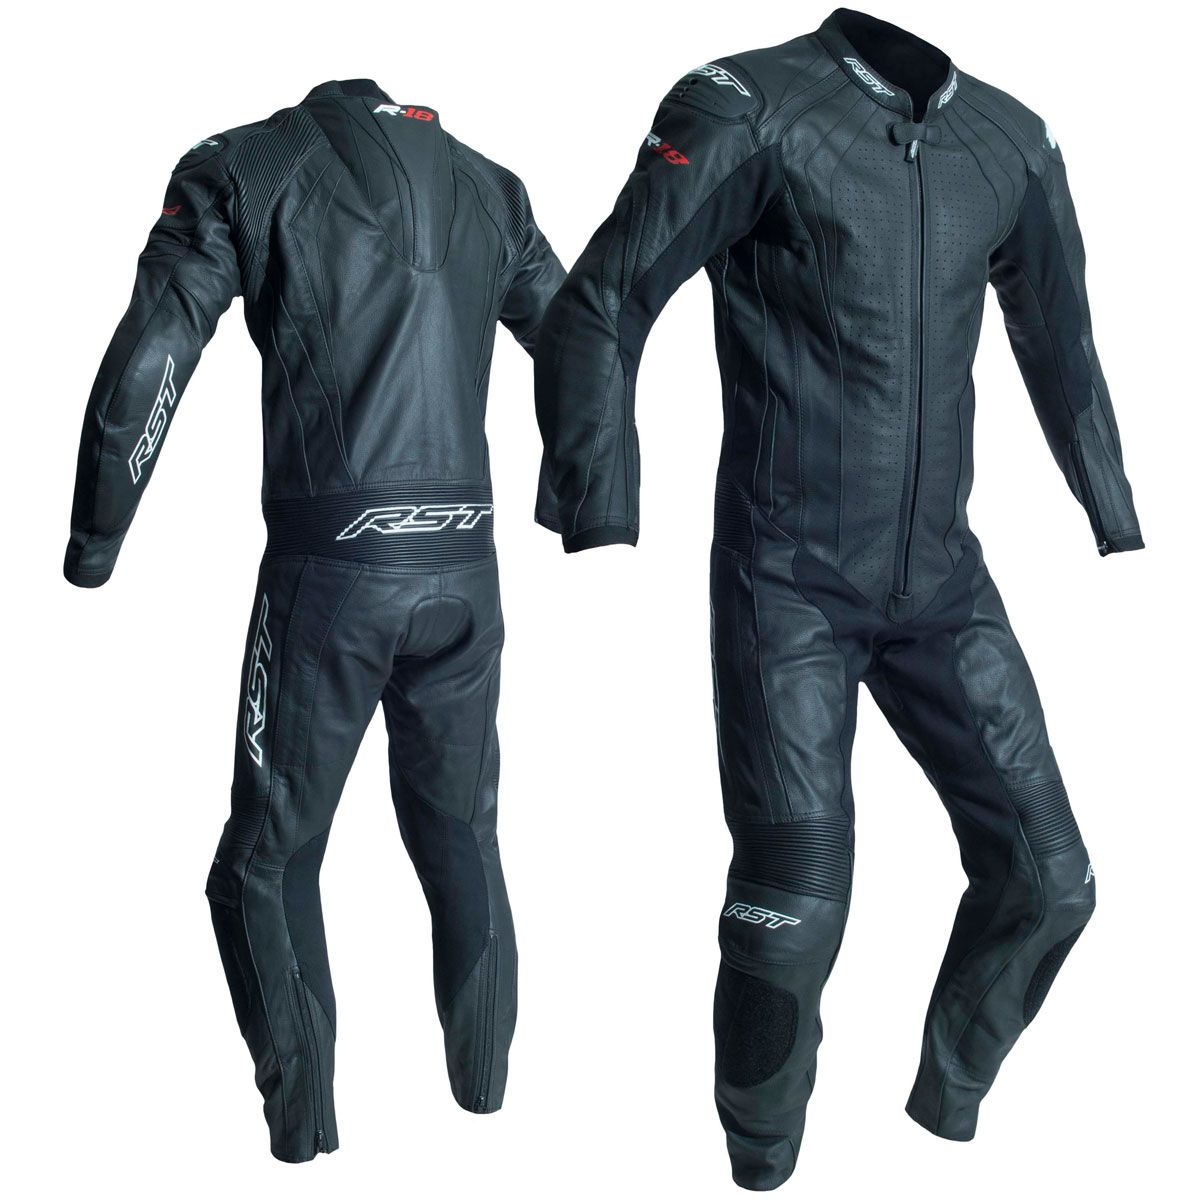 RST R-18 CE One Piece Leather Suit Black